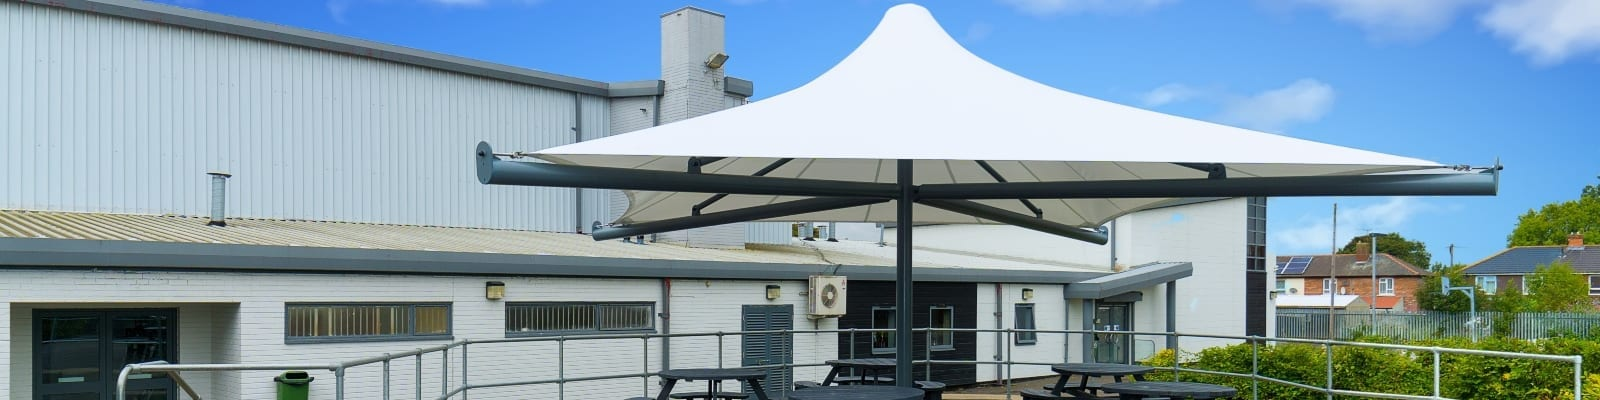 St Lawrence Academy Umbrella Canopy